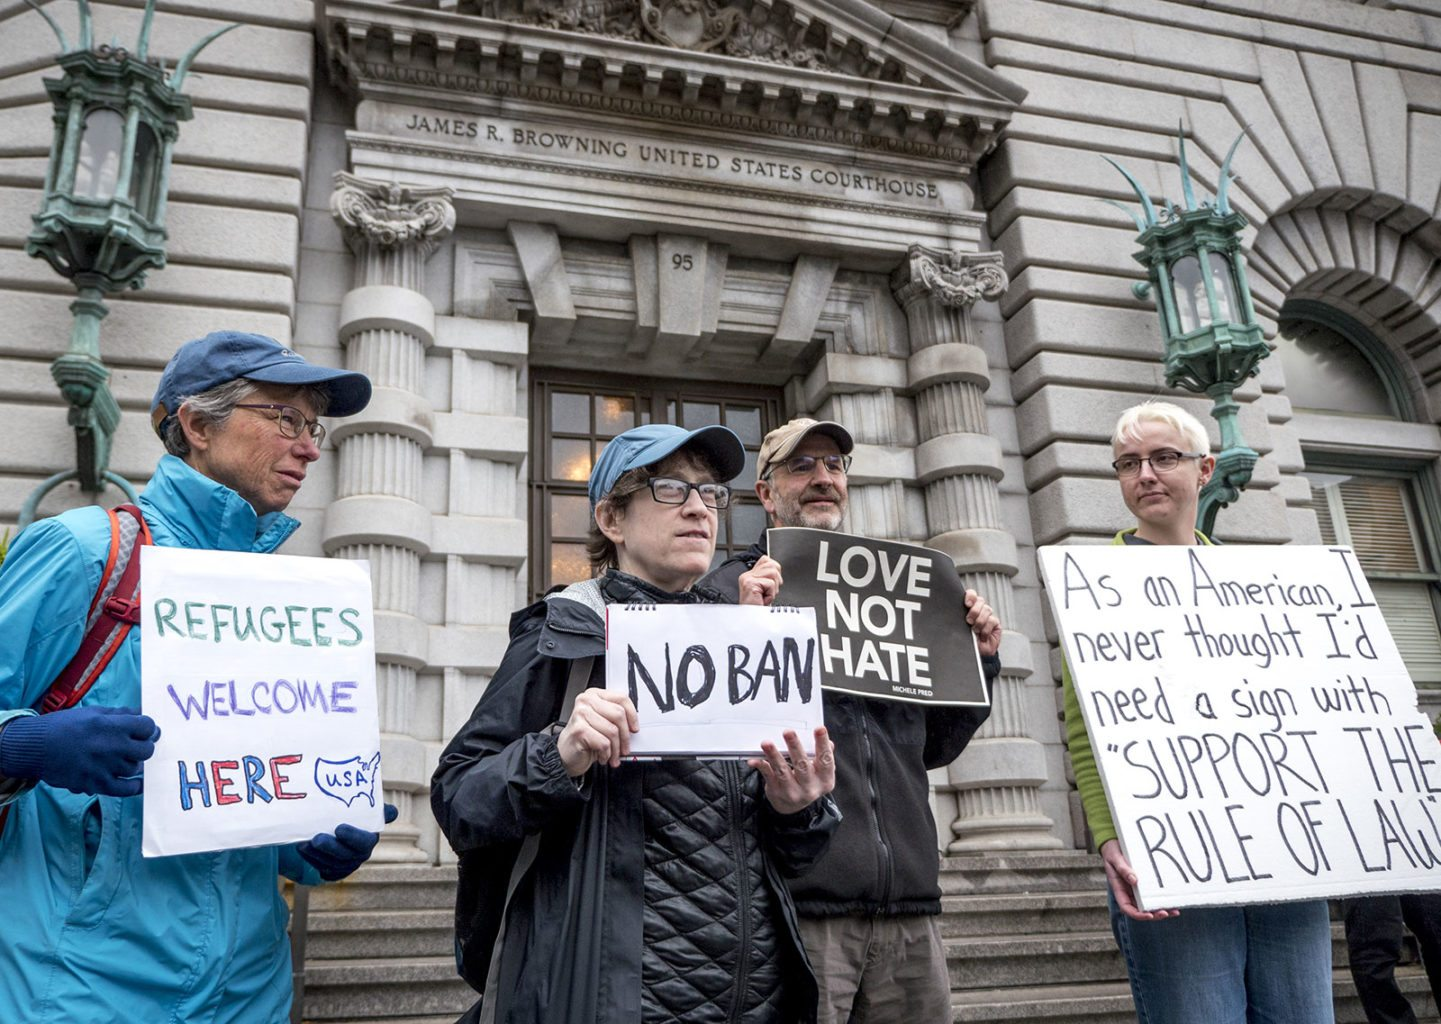 Protesters stand outside the 9th U.S. Circuit Court of Appeals in San Francisco on Feb. 7 while the court hears arguments regarding President Donald Trump's travel ban. (Courtesy agenzia32.com/Shutterstock)